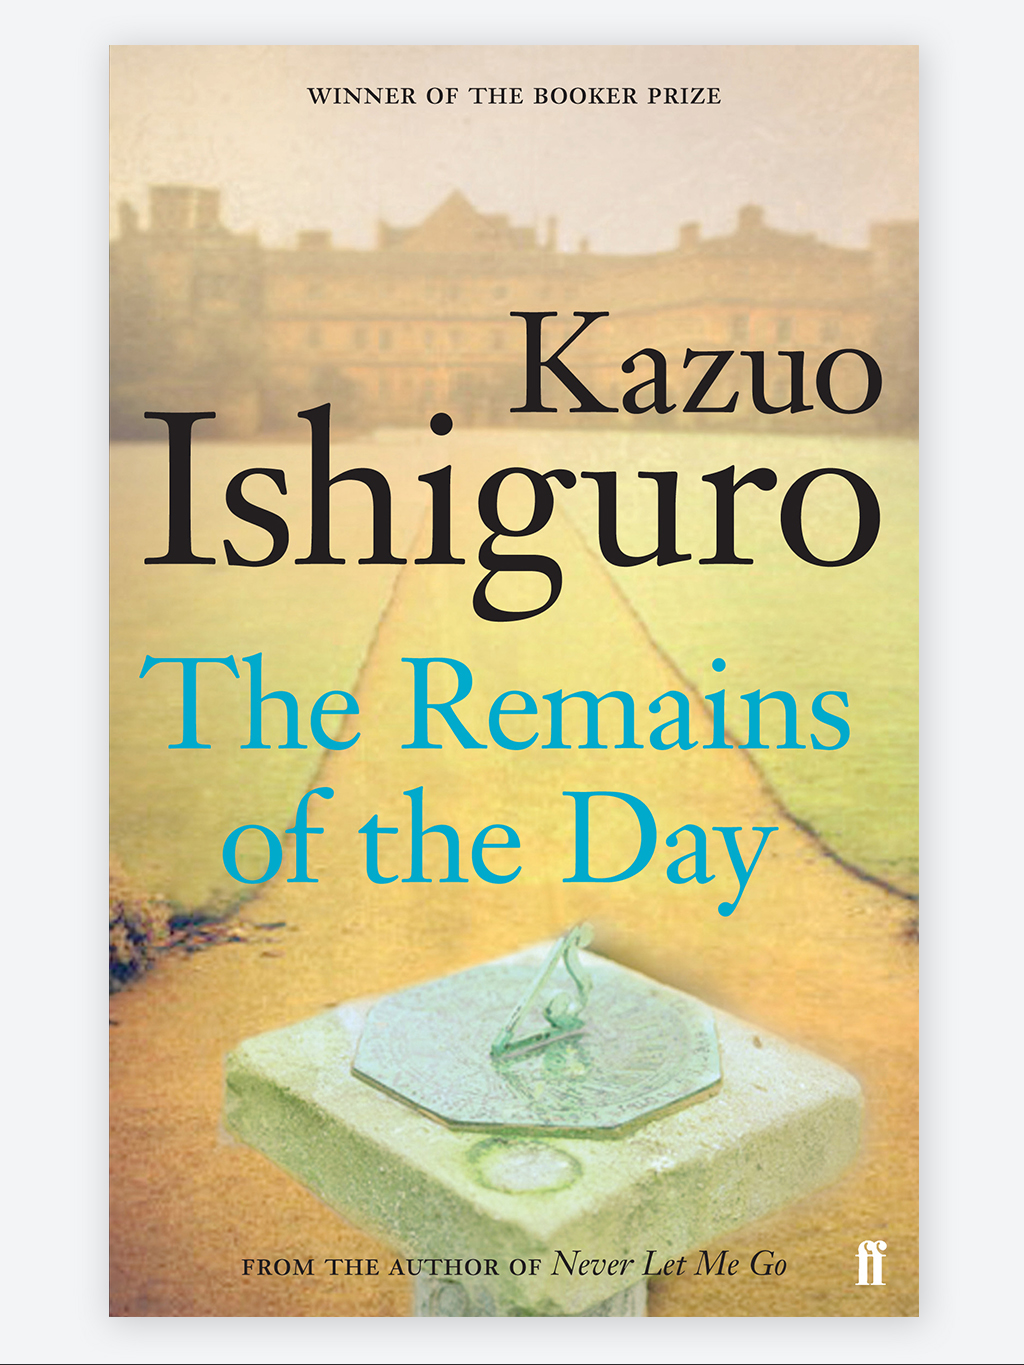 The remains of the Day, Novel by Kazuo Ishiguro